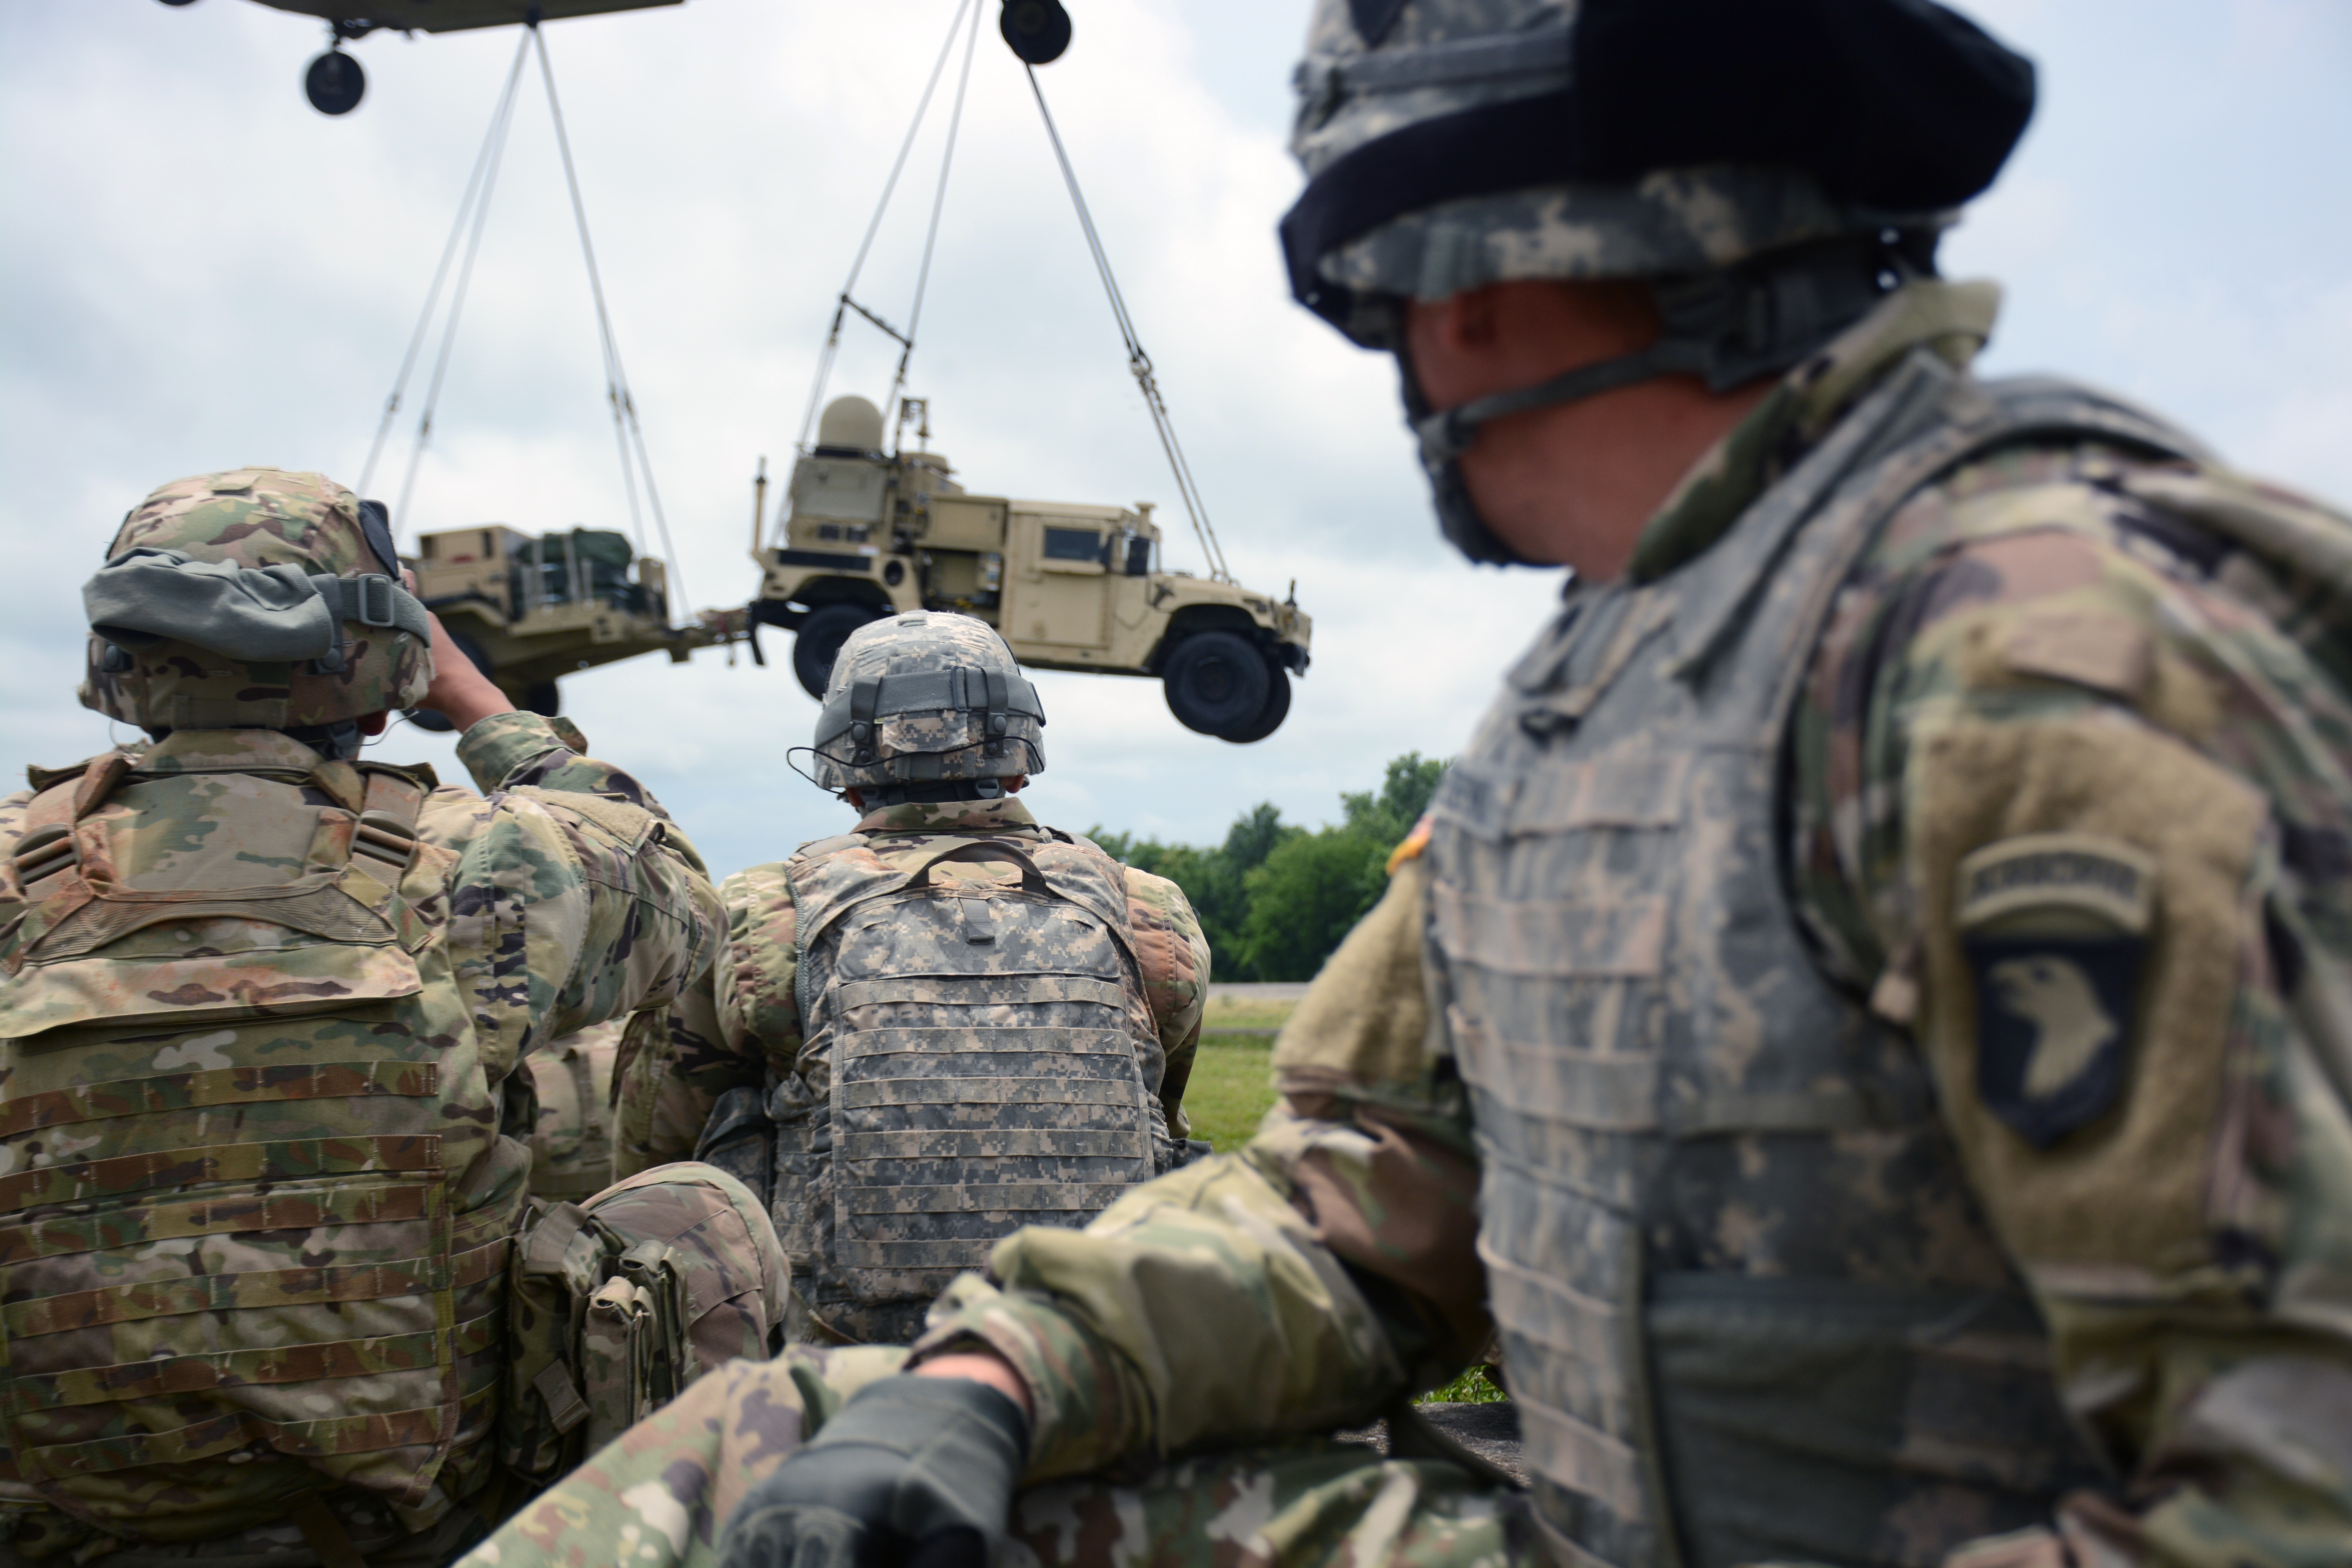 101st Airborne puts new expeditionary comms gear through the